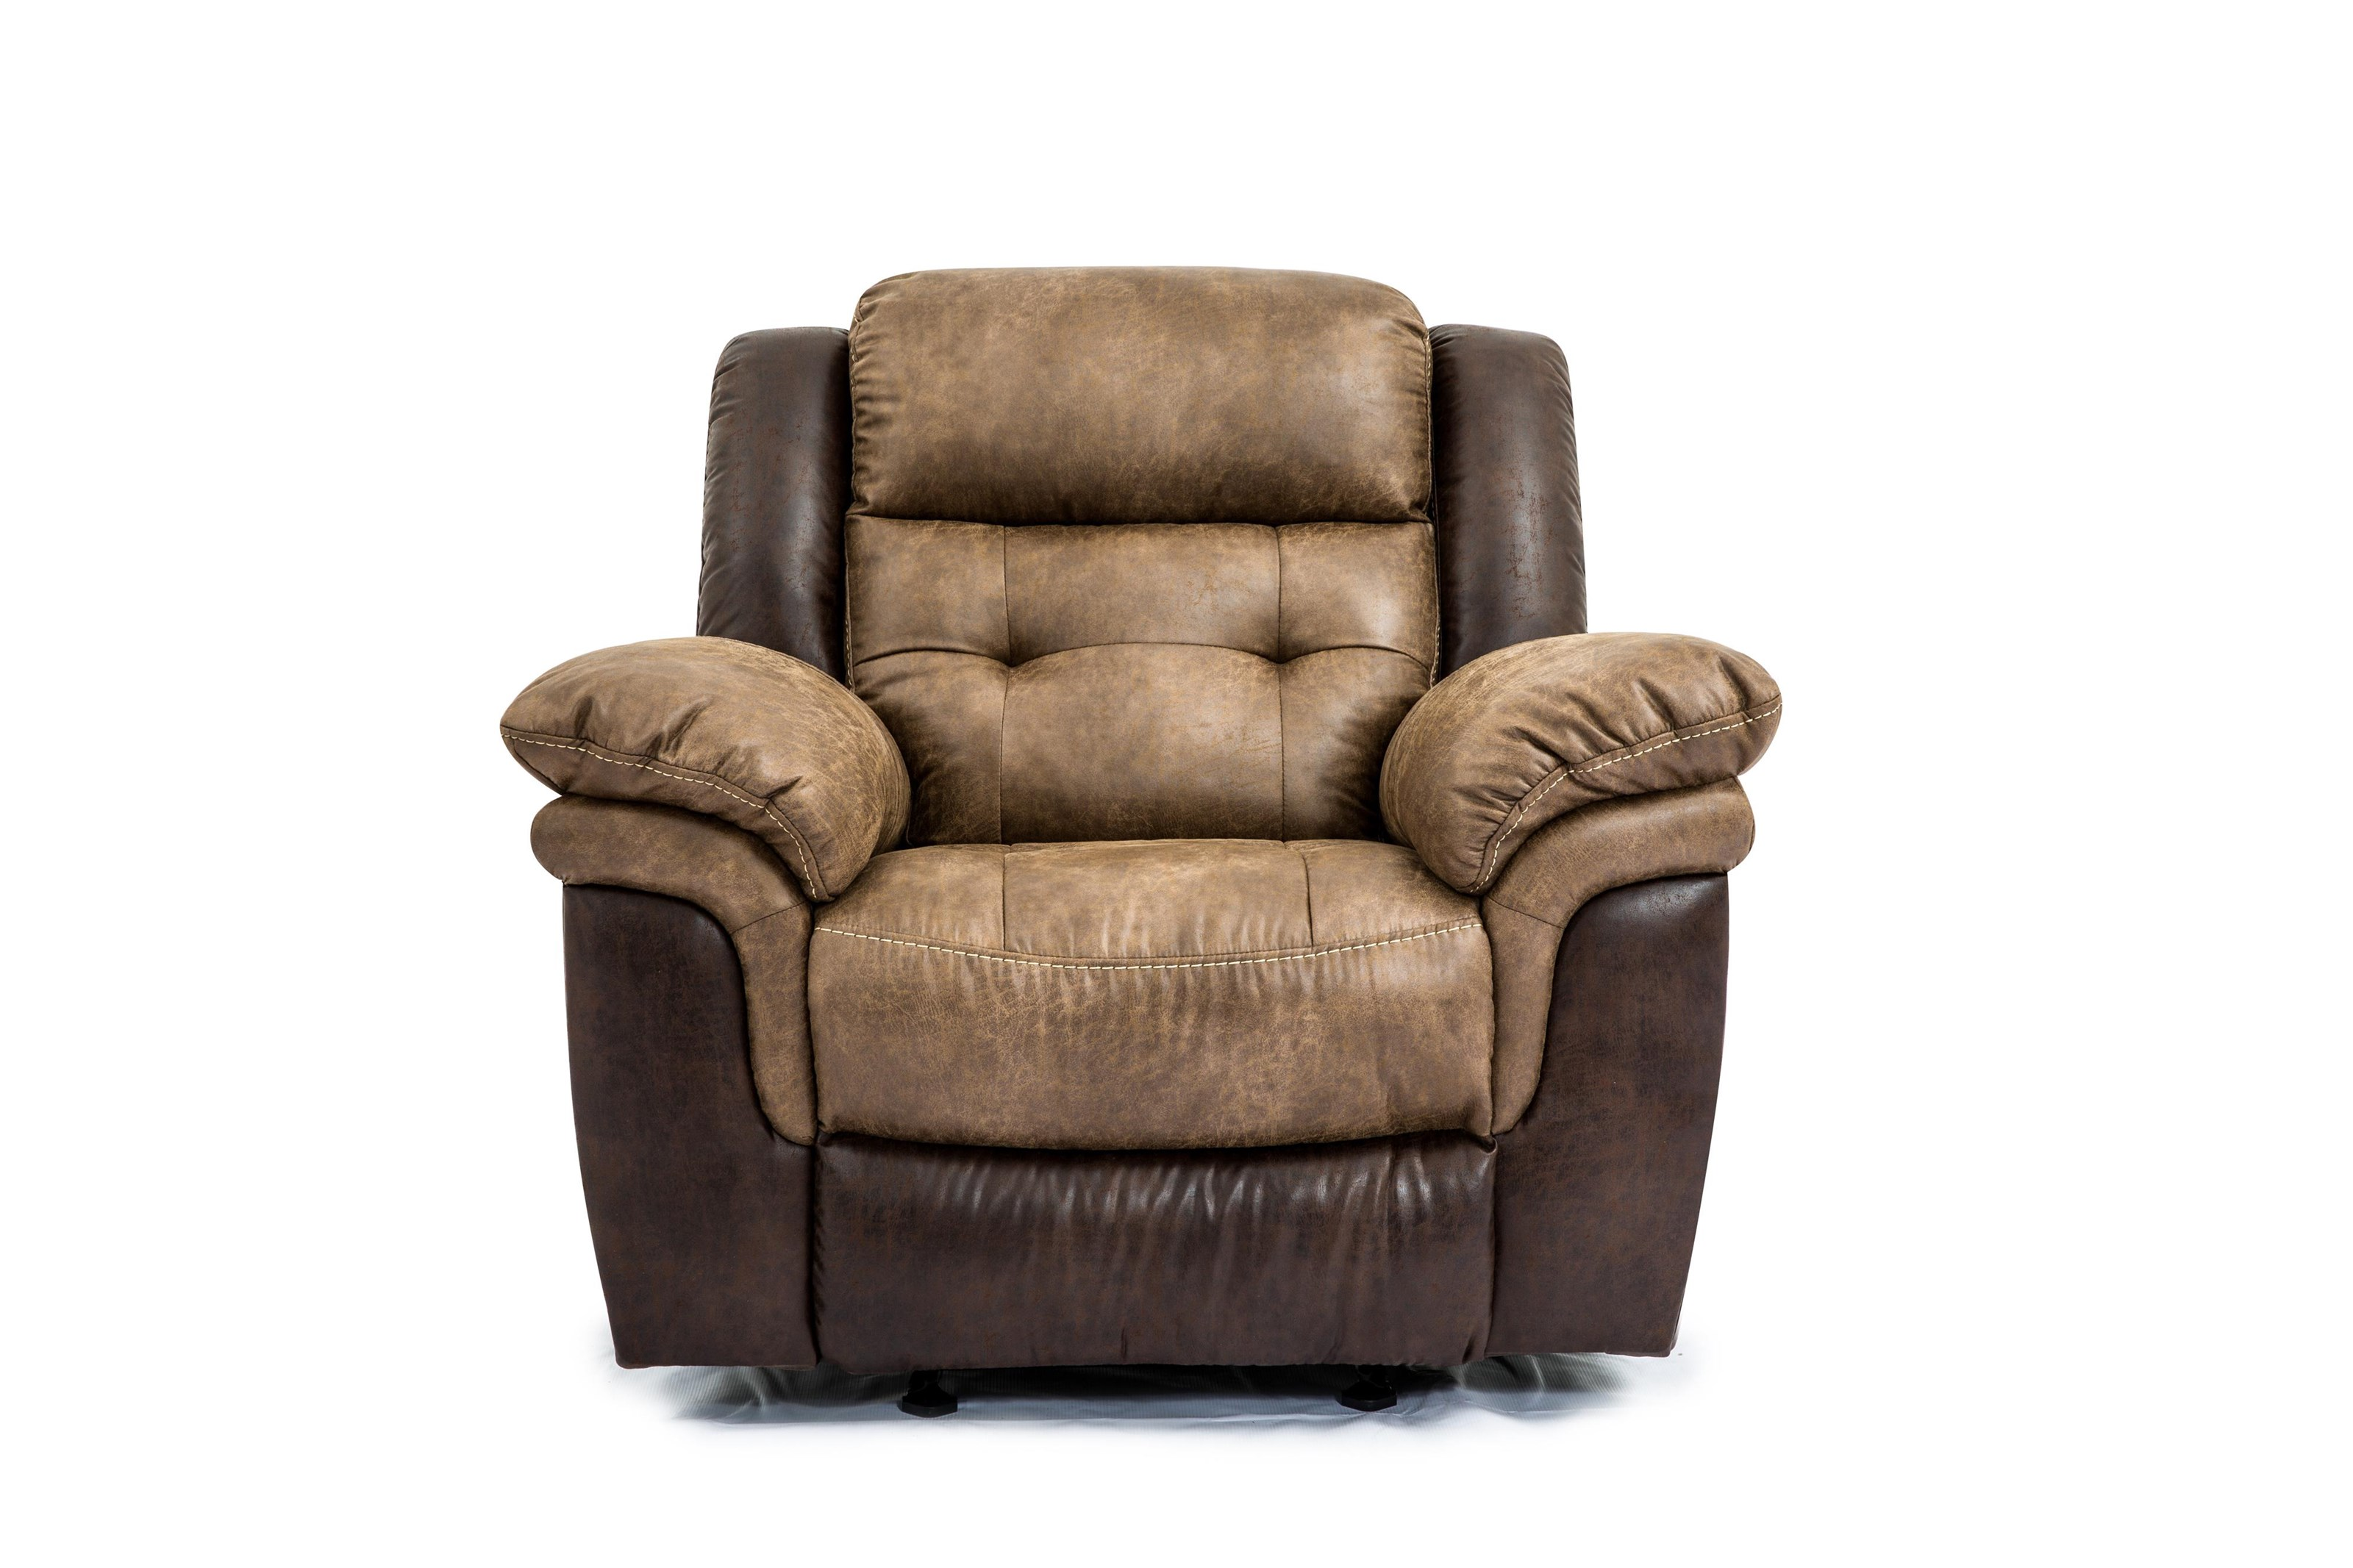 Reeds Trading Company Alford Recliner - Item Number: XW5156 L1-1K